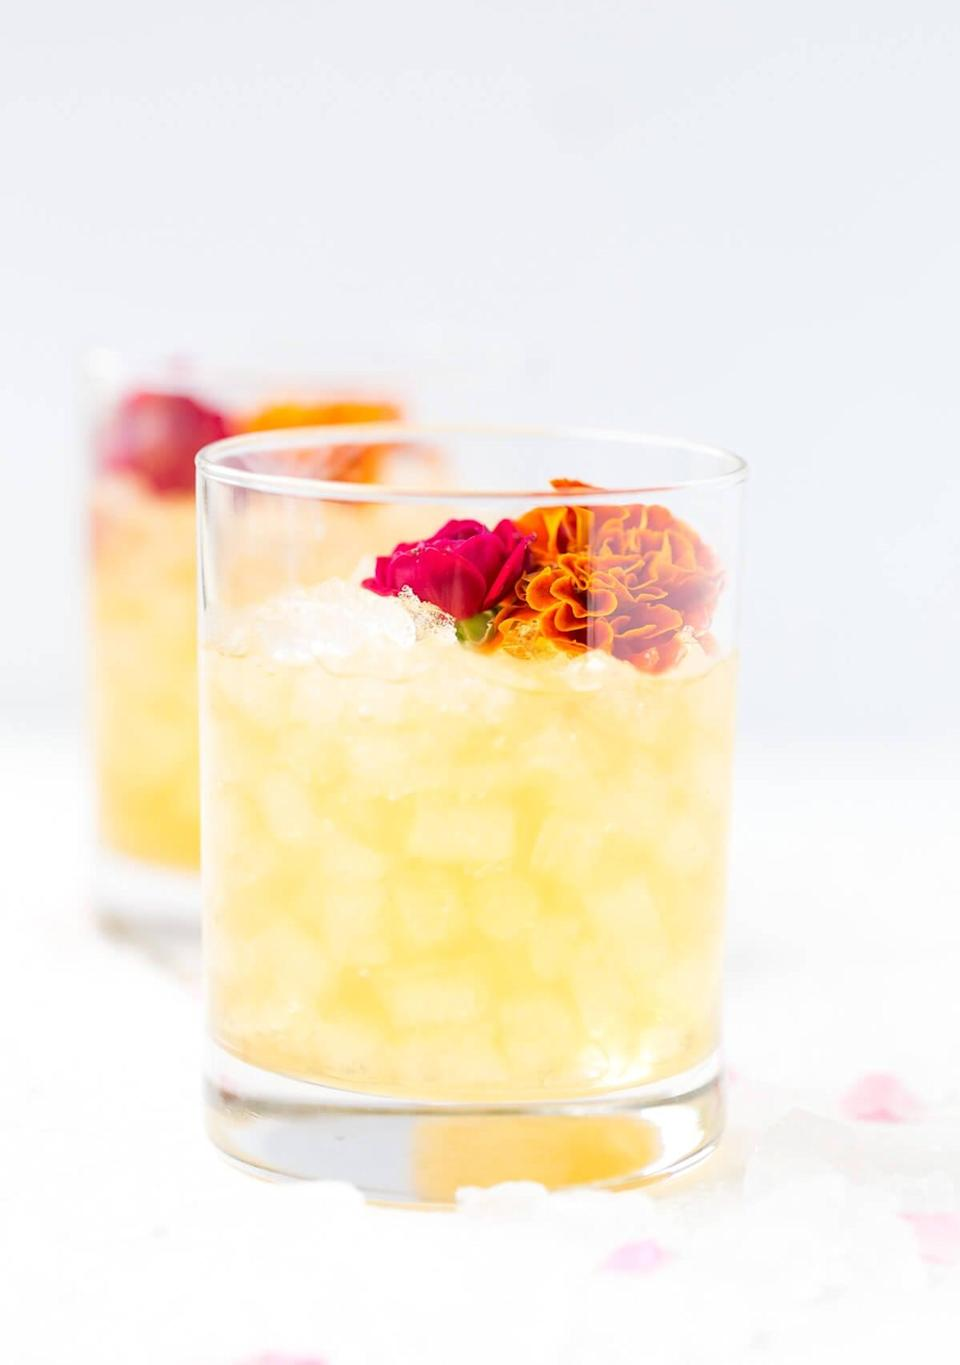 """<p>Shoutout to Pennsylvania for knowing what's up! Locals are on the hunt for whiskey sour recipes, which ties in perfectly with the warmer months ahead. This chic recipe utilizes edible flowers, which means the garnishing will be grand. </p> <p><strong>Get the recipe</strong>: <a href=""""https://www.popsugar.com/buy?url=https%3A%2F%2Fazestybite.com%2Ffloral-whiskey-sour%2F&p_name=floral%20whiskey%20sour&retailer=azestybite.com&evar1=yum%3Aus&evar9=47471653&evar98=https%3A%2F%2Fwww.popsugar.com%2Ffood%2Fphoto-gallery%2F47471653%2Fimage%2F47474655%2FPennsylvania-Whiskey-Sour&list1=cocktails%2Cdrinks%2Calcohol%2Crecipes&prop13=api&pdata=1"""" class=""""link rapid-noclick-resp"""" rel=""""nofollow noopener"""" target=""""_blank"""" data-ylk=""""slk:floral whiskey sour"""">floral whiskey sour</a></p>"""